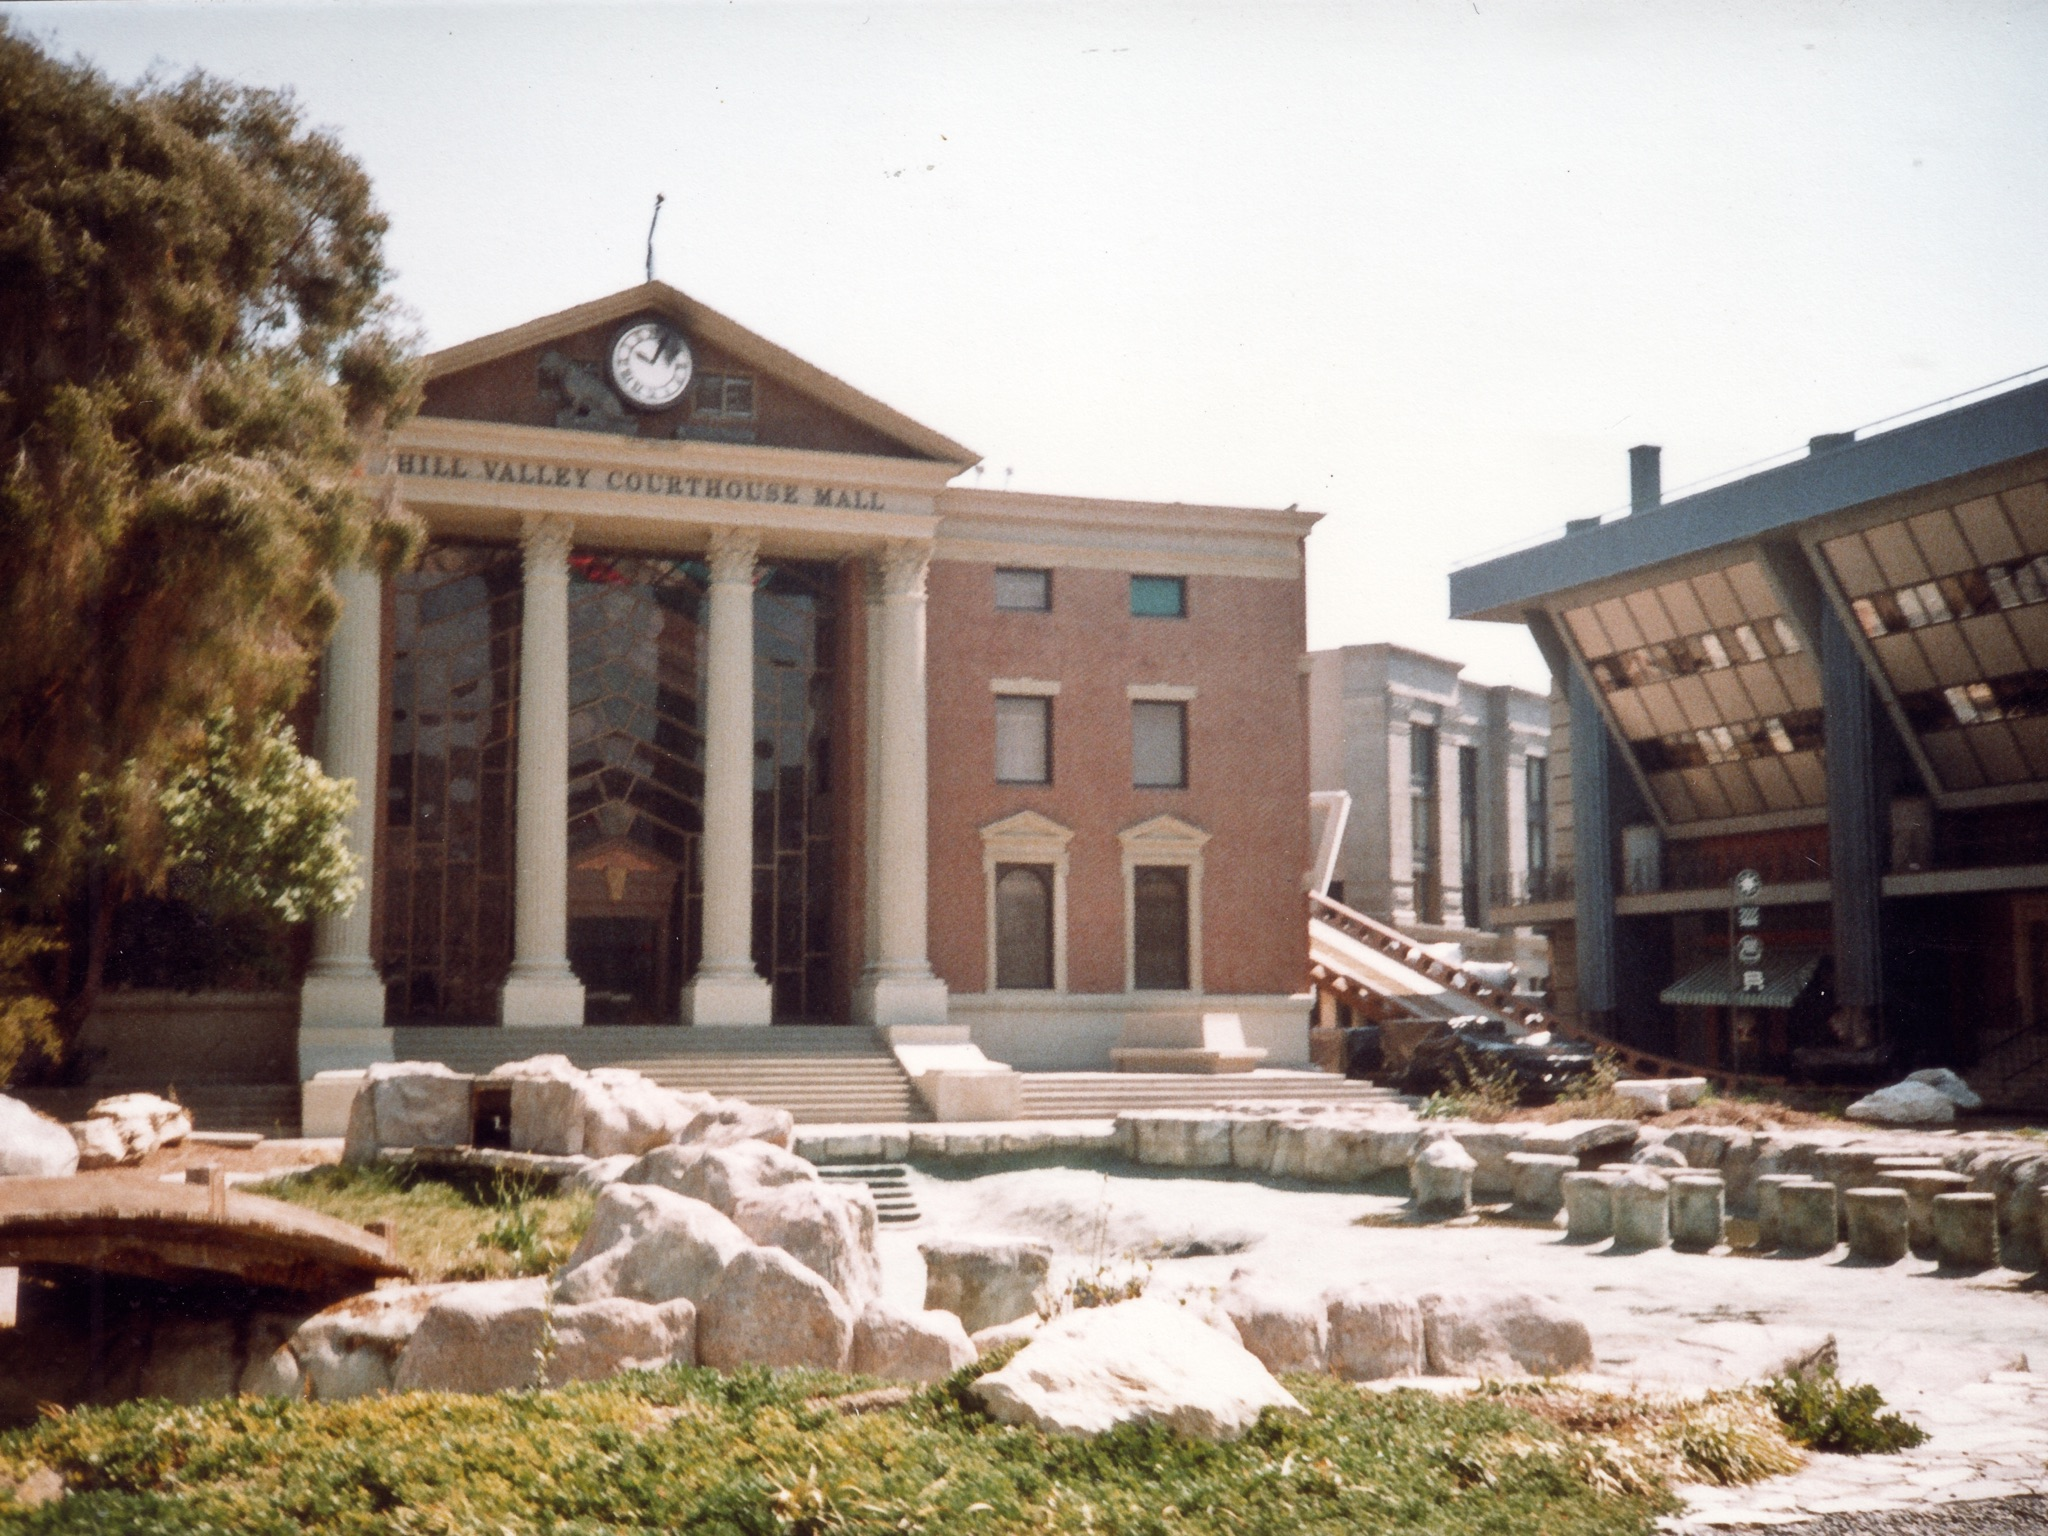 Back to the Future Universal Studios 1989 Set Backlot Tour Hill Valley Courthouse Jay McLaughlin Nostalgia Childhood